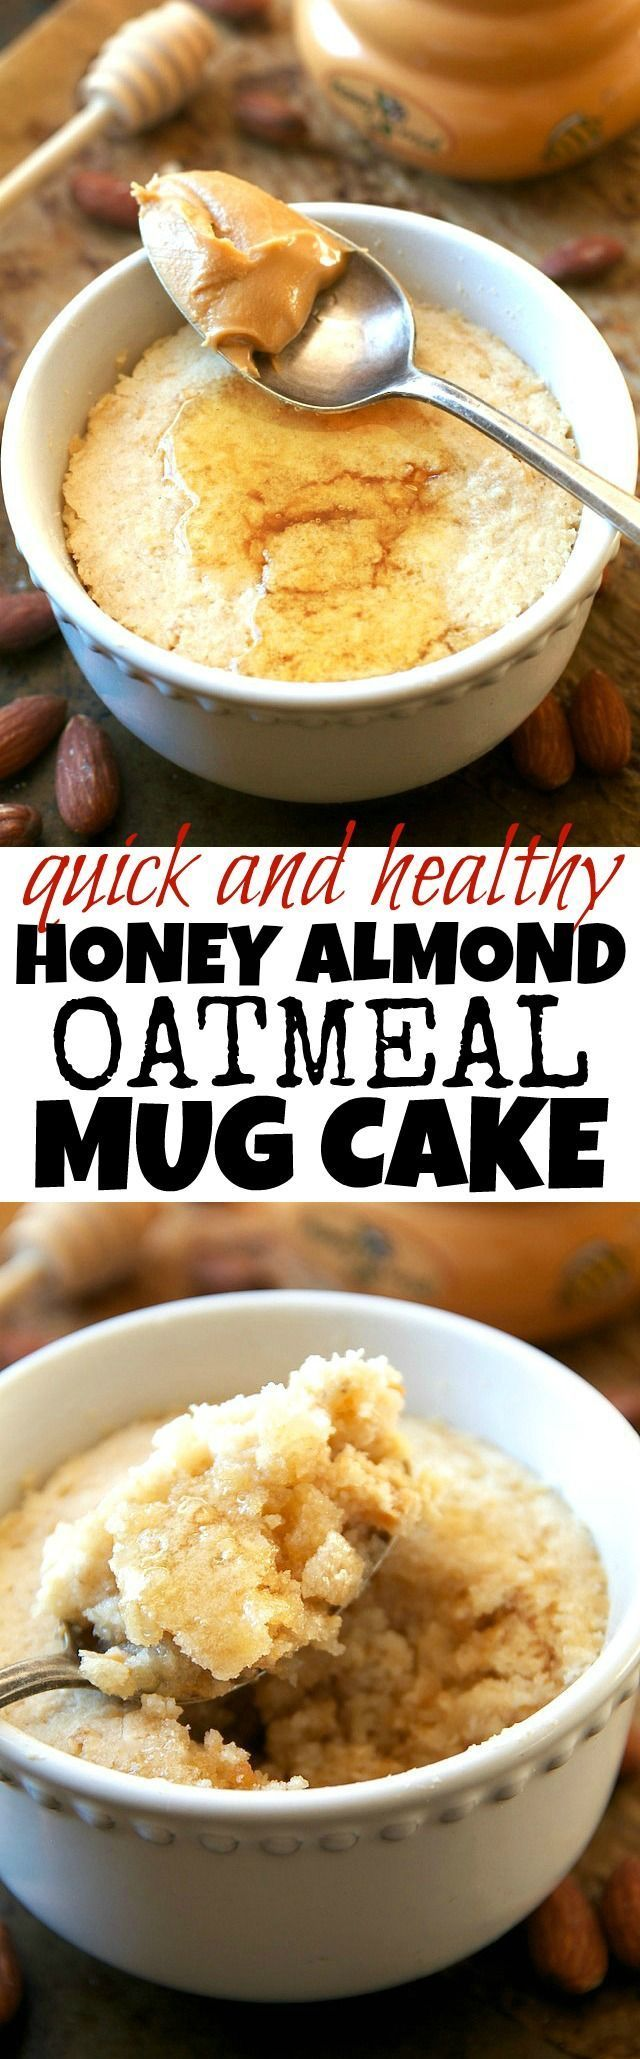 Honey Almond Oatmeal Mug Cake | running with spoons ...